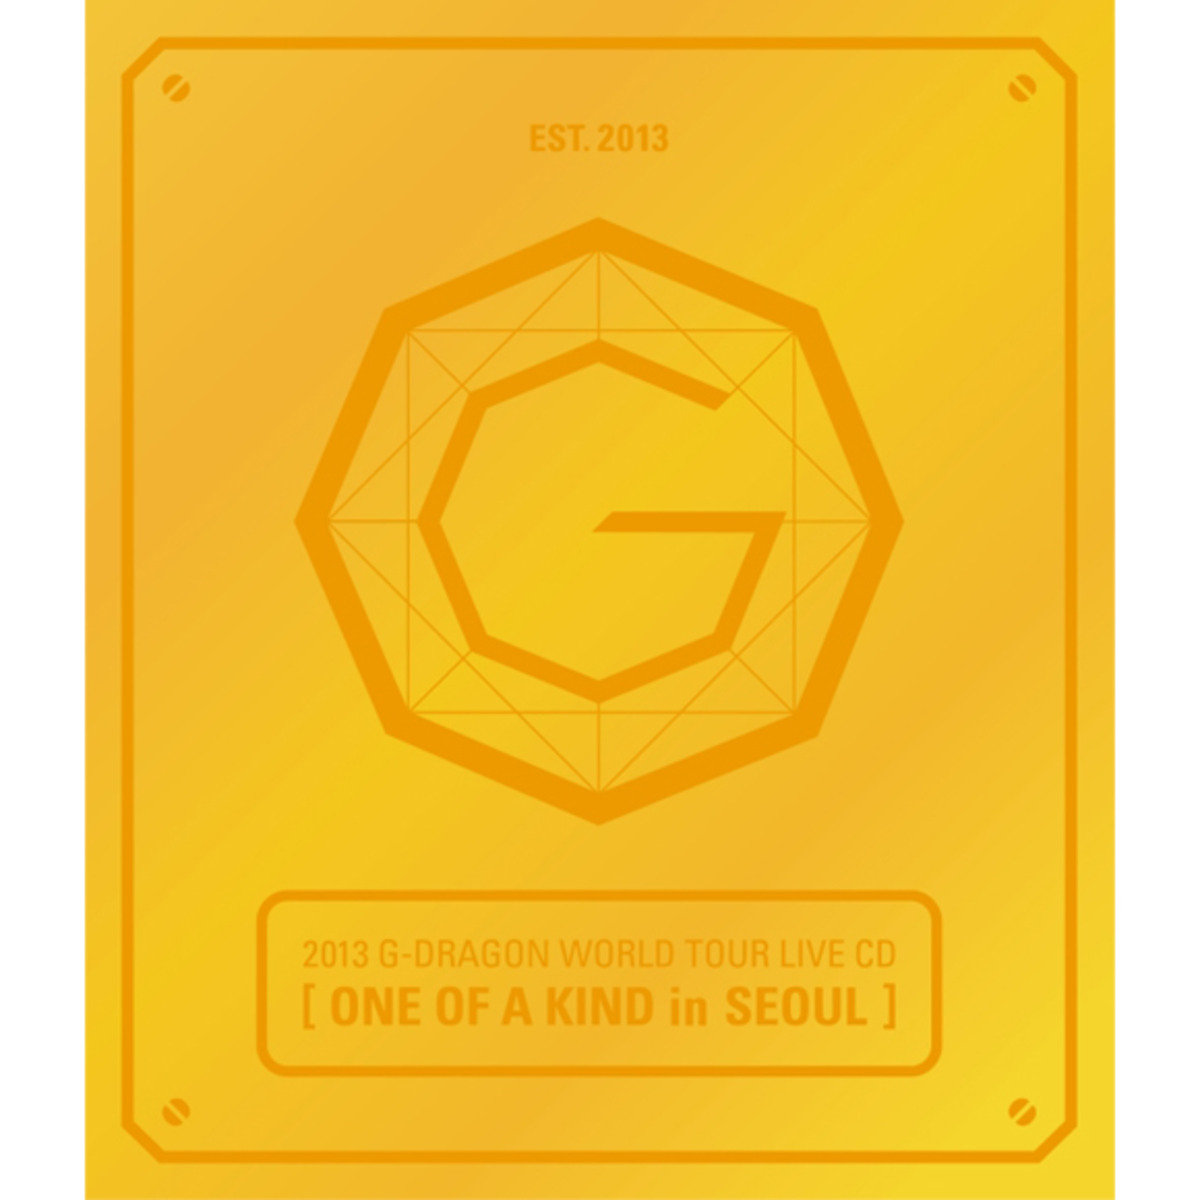 G-Dragon -2013 G-DRAGON WORLD TOUR LIVE CD[ONE OF A KIND in SEOUL](Gold Ver.+Booklet+Standing Paper)